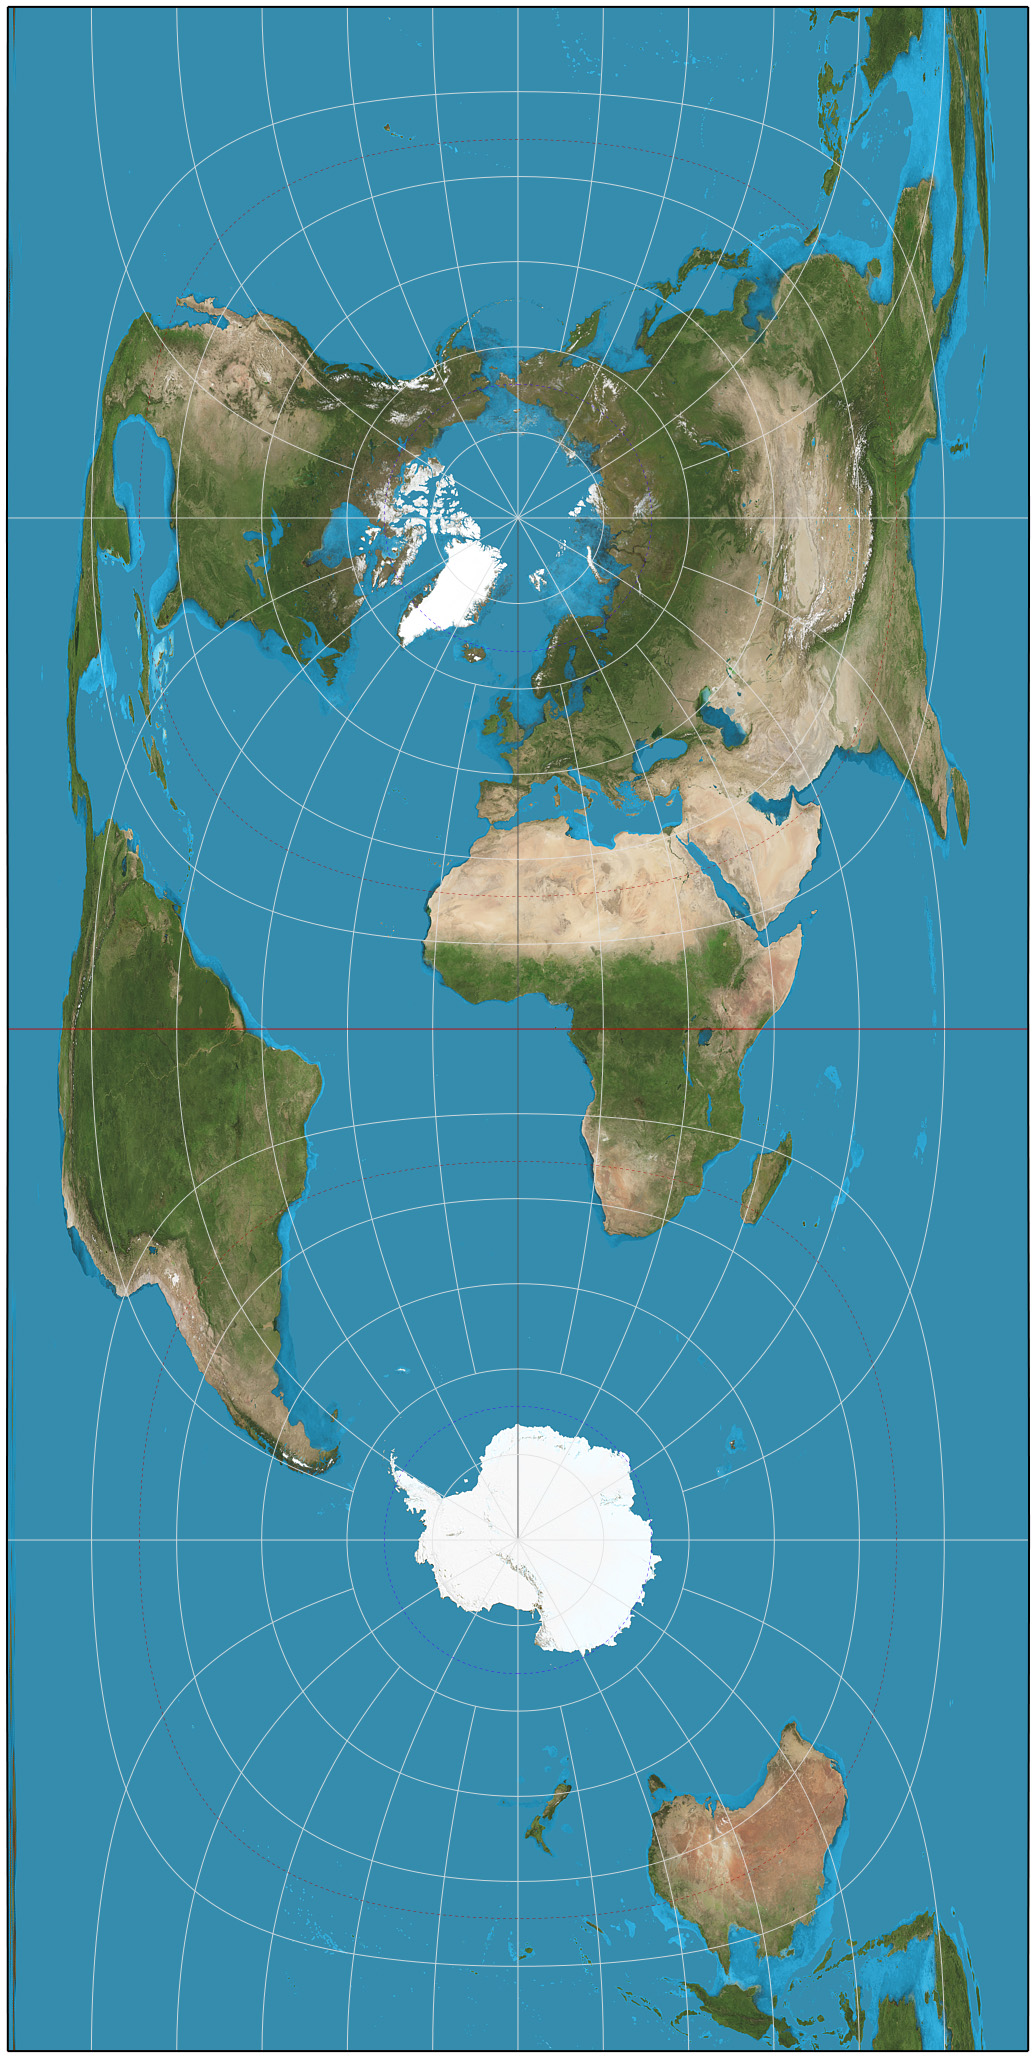 List of map projections - Wikipedia Since Earth Is A Sphere Maps on earth timeline map, earth radius map, earth atlas map, earth circle map, earth surface map, earth ball map, earth orbit map, earth normal map, earth geoid map, earth hexagon map, earth parallel map, earth hemisphere map, earth heat map, earth cylinder map, earth topology map, earth grid map, earth square map, earth gravity map,